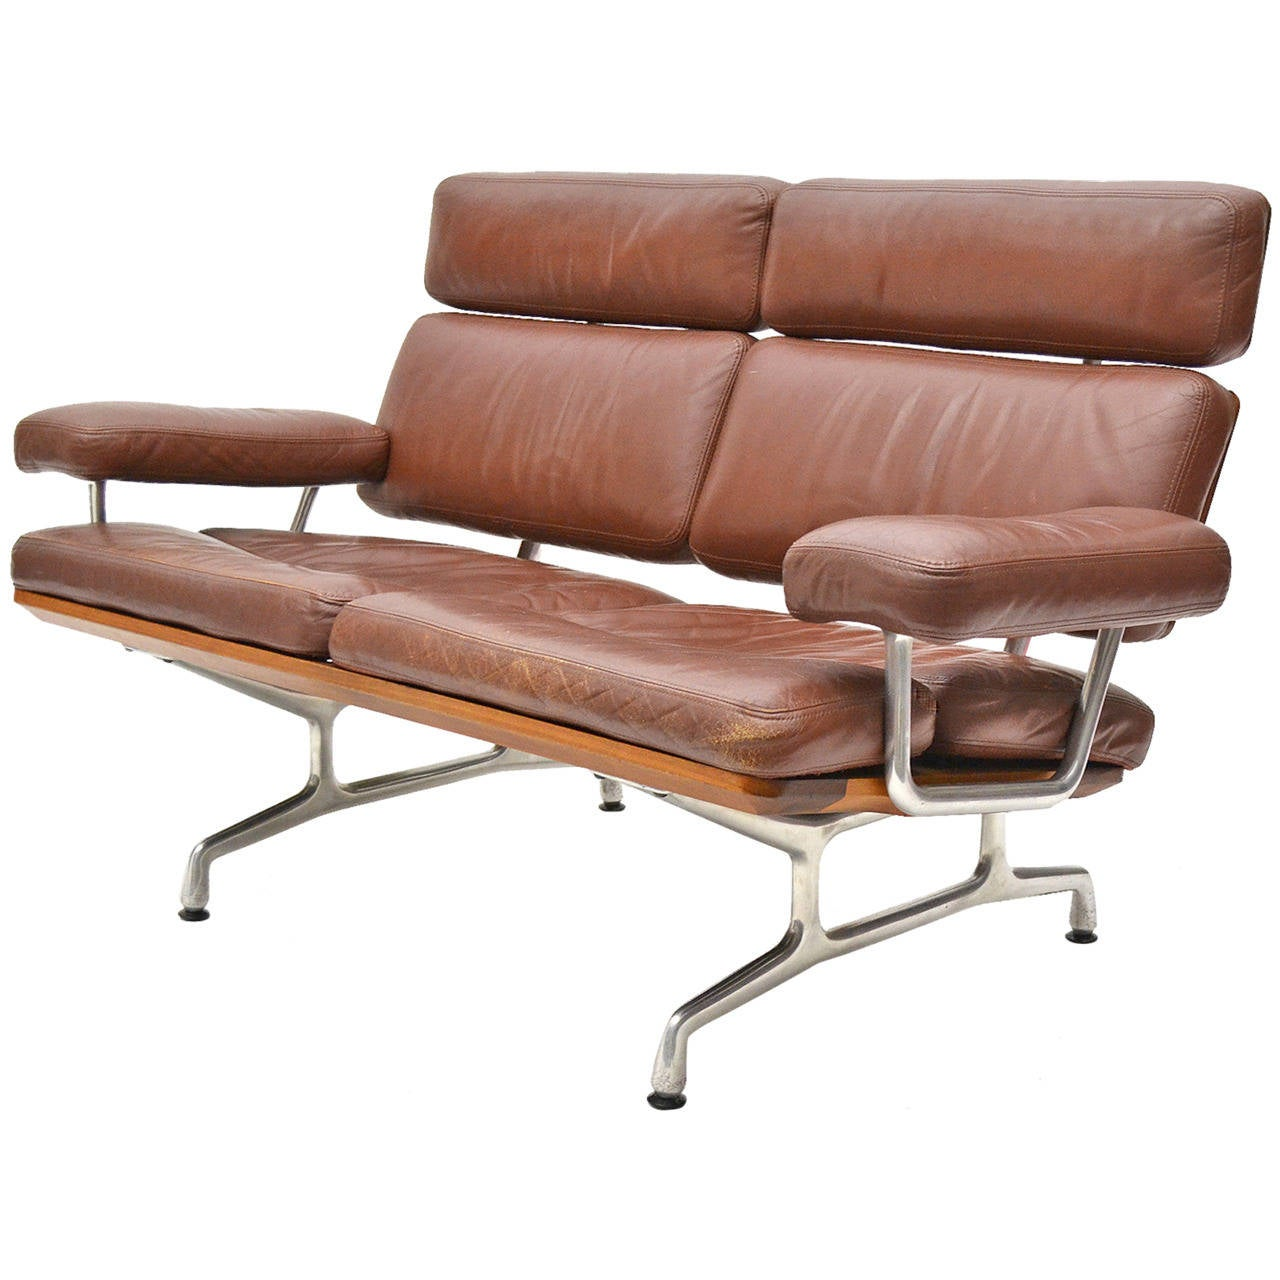 Eames Teak And Leather Sofa By Herman Miller At 1stdibs